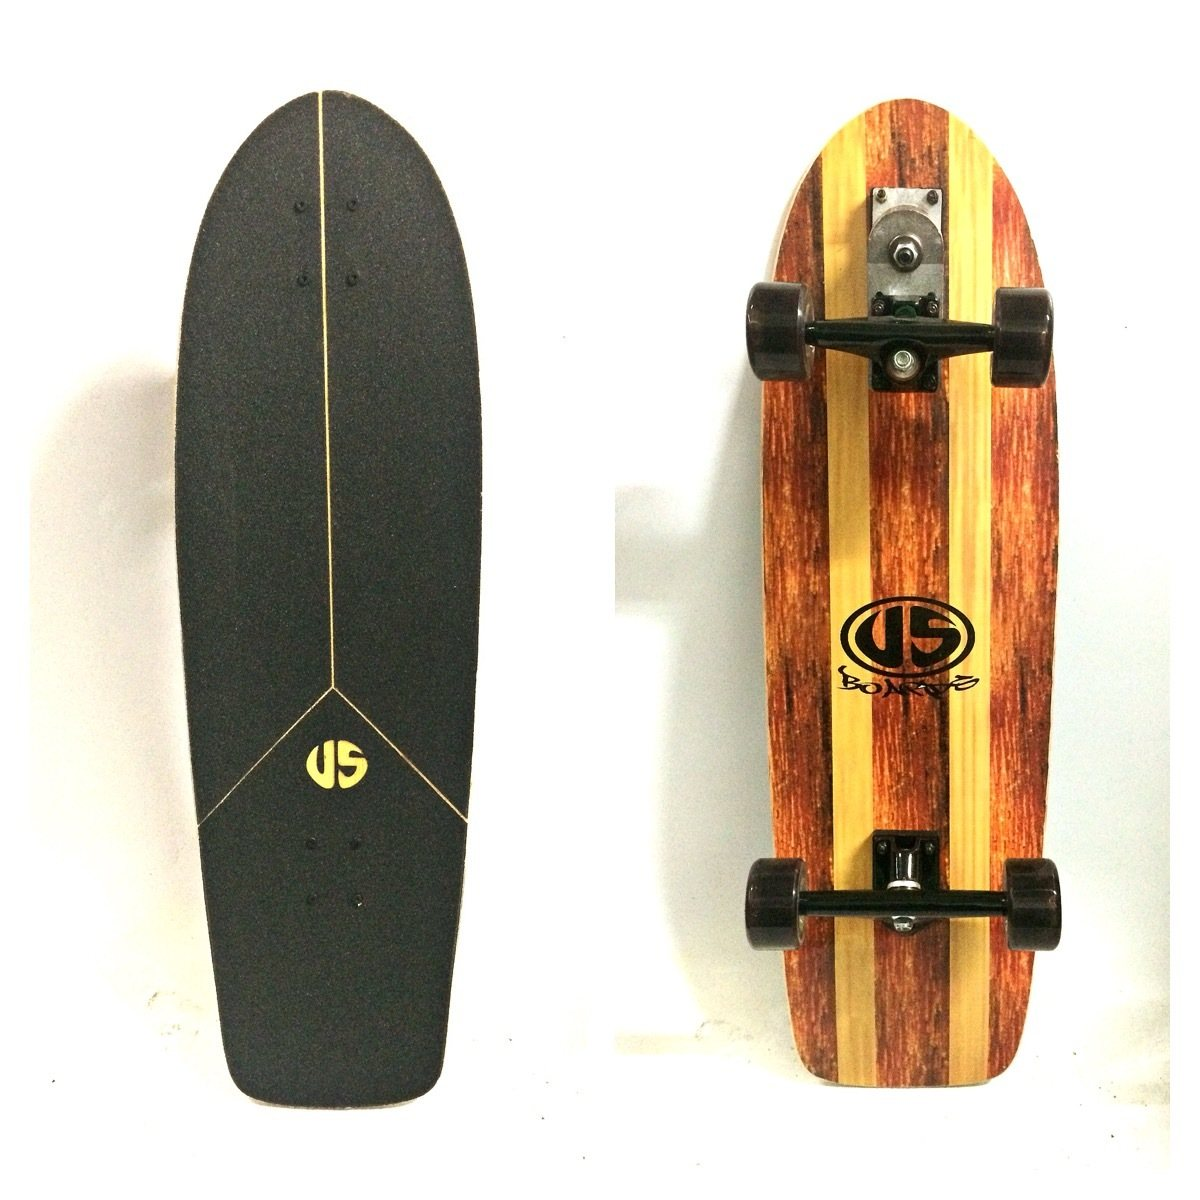 Skate Simulador de Surf G3 S2 | US Boards